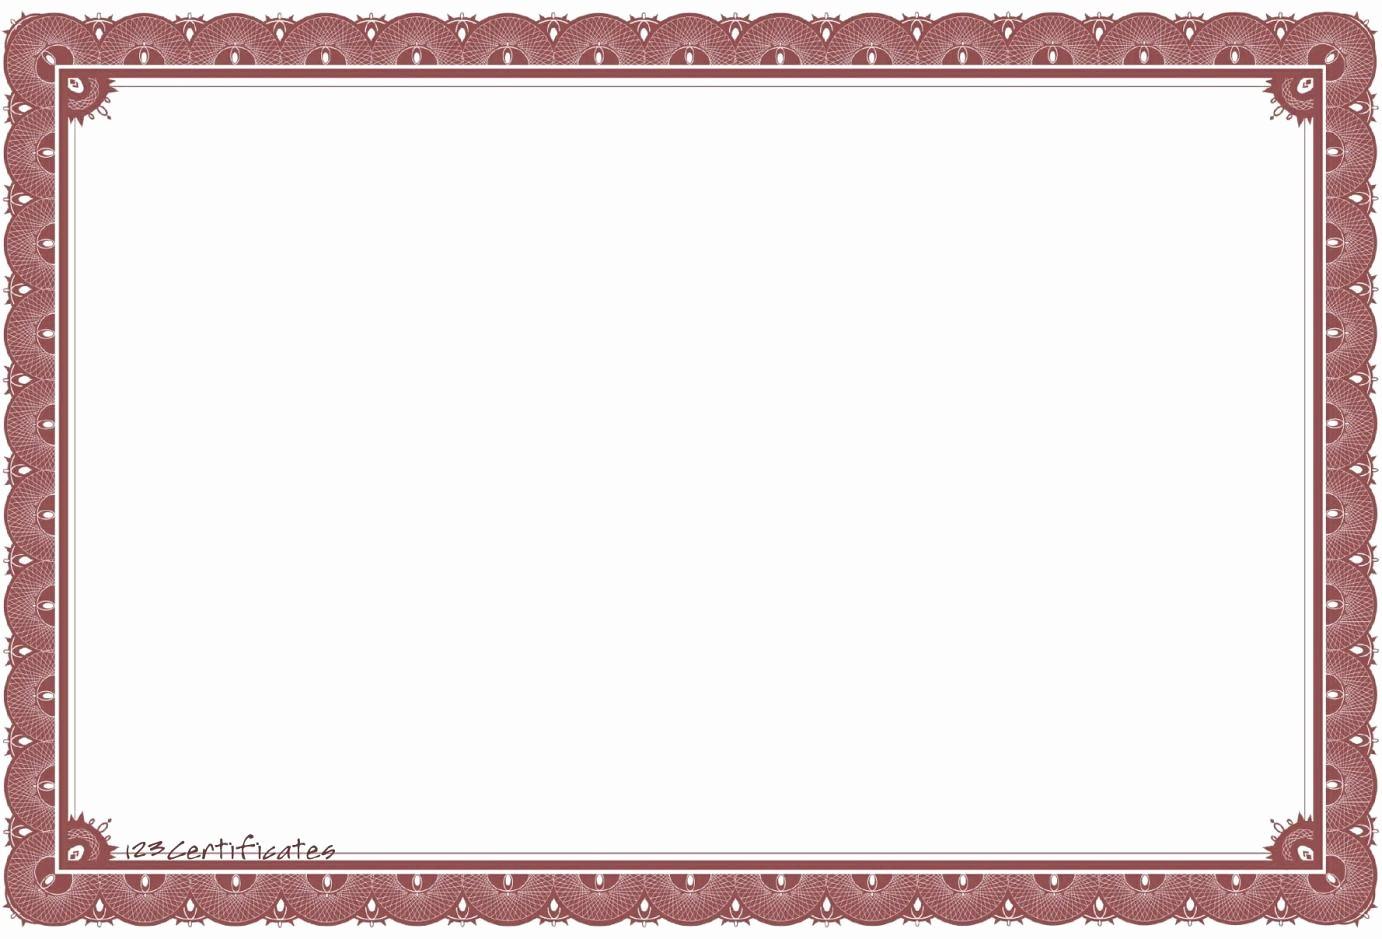 Free Printable Blank Certificate Borders Awesome Purple Certificate Template